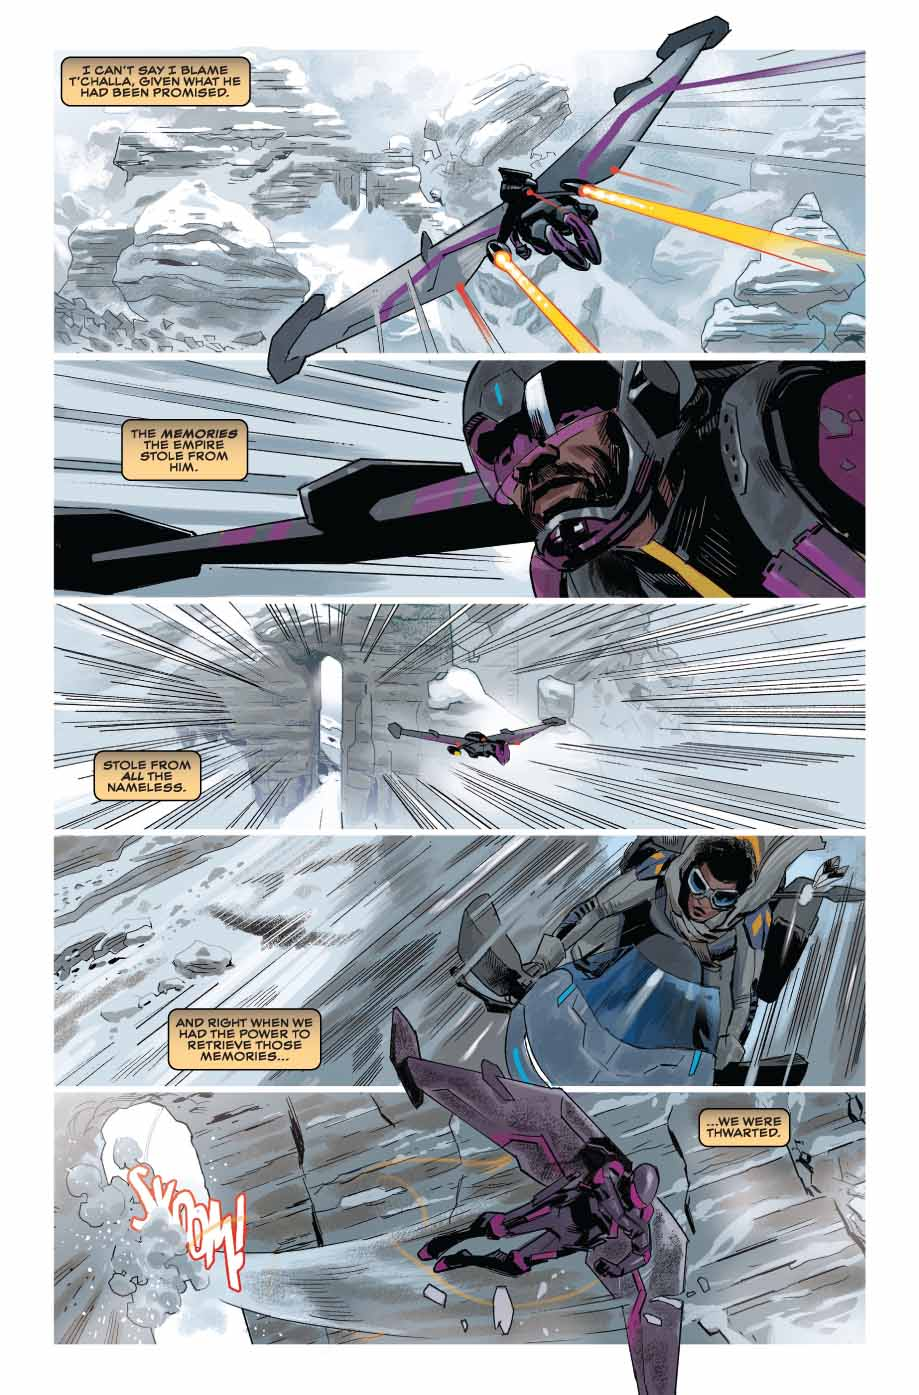 blackpanther53